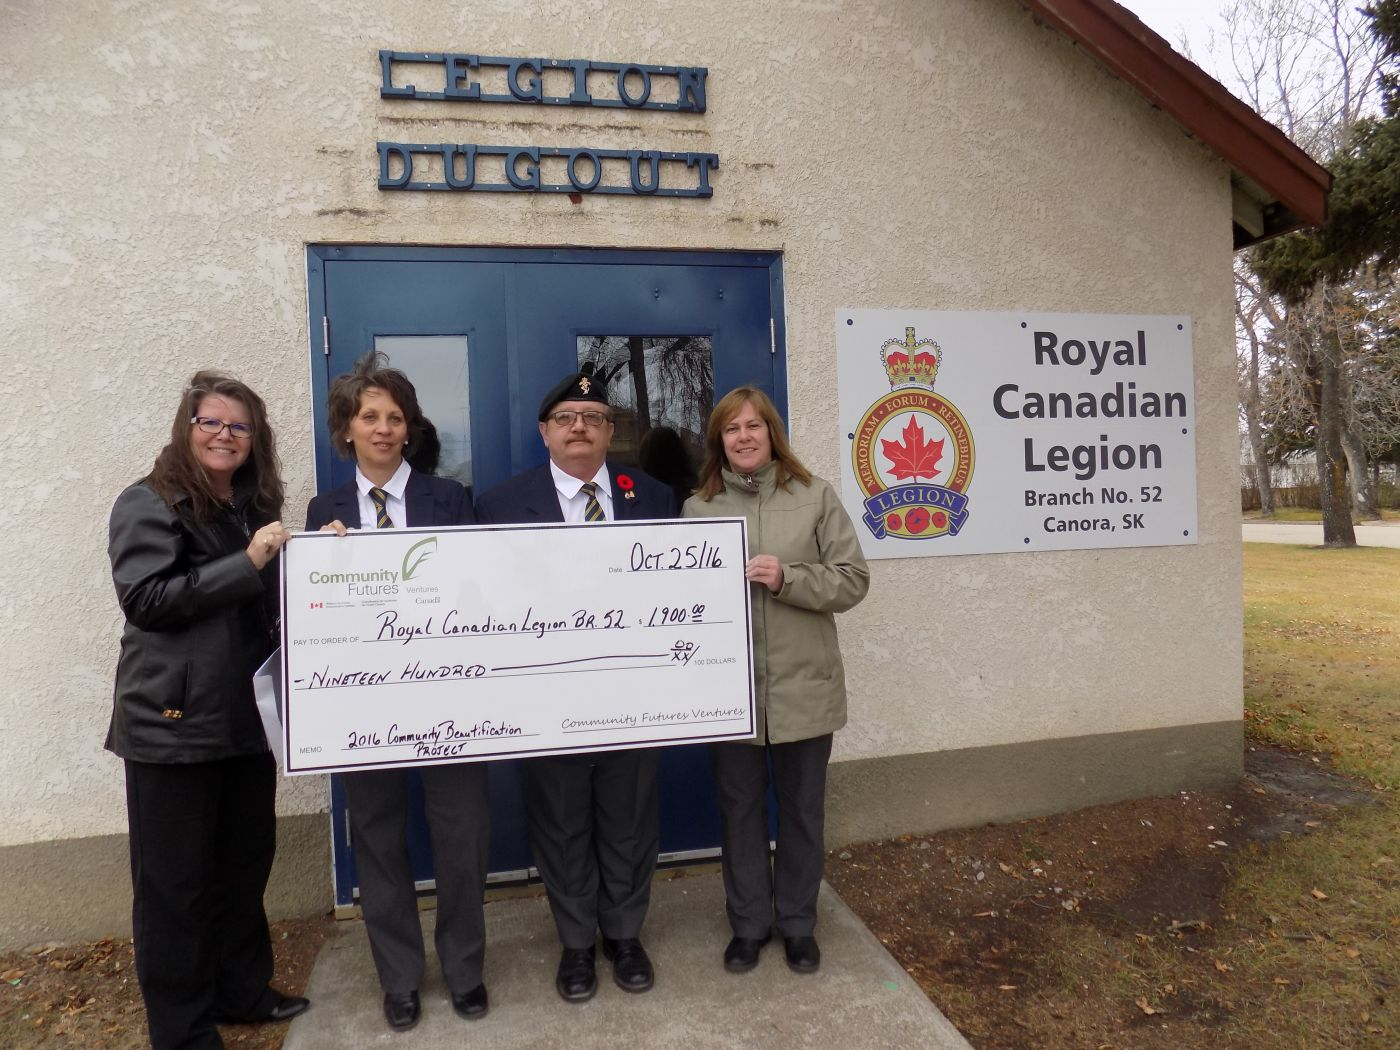 Congratulations to the Canora Branch of the Royal Canadian Legion No. 52